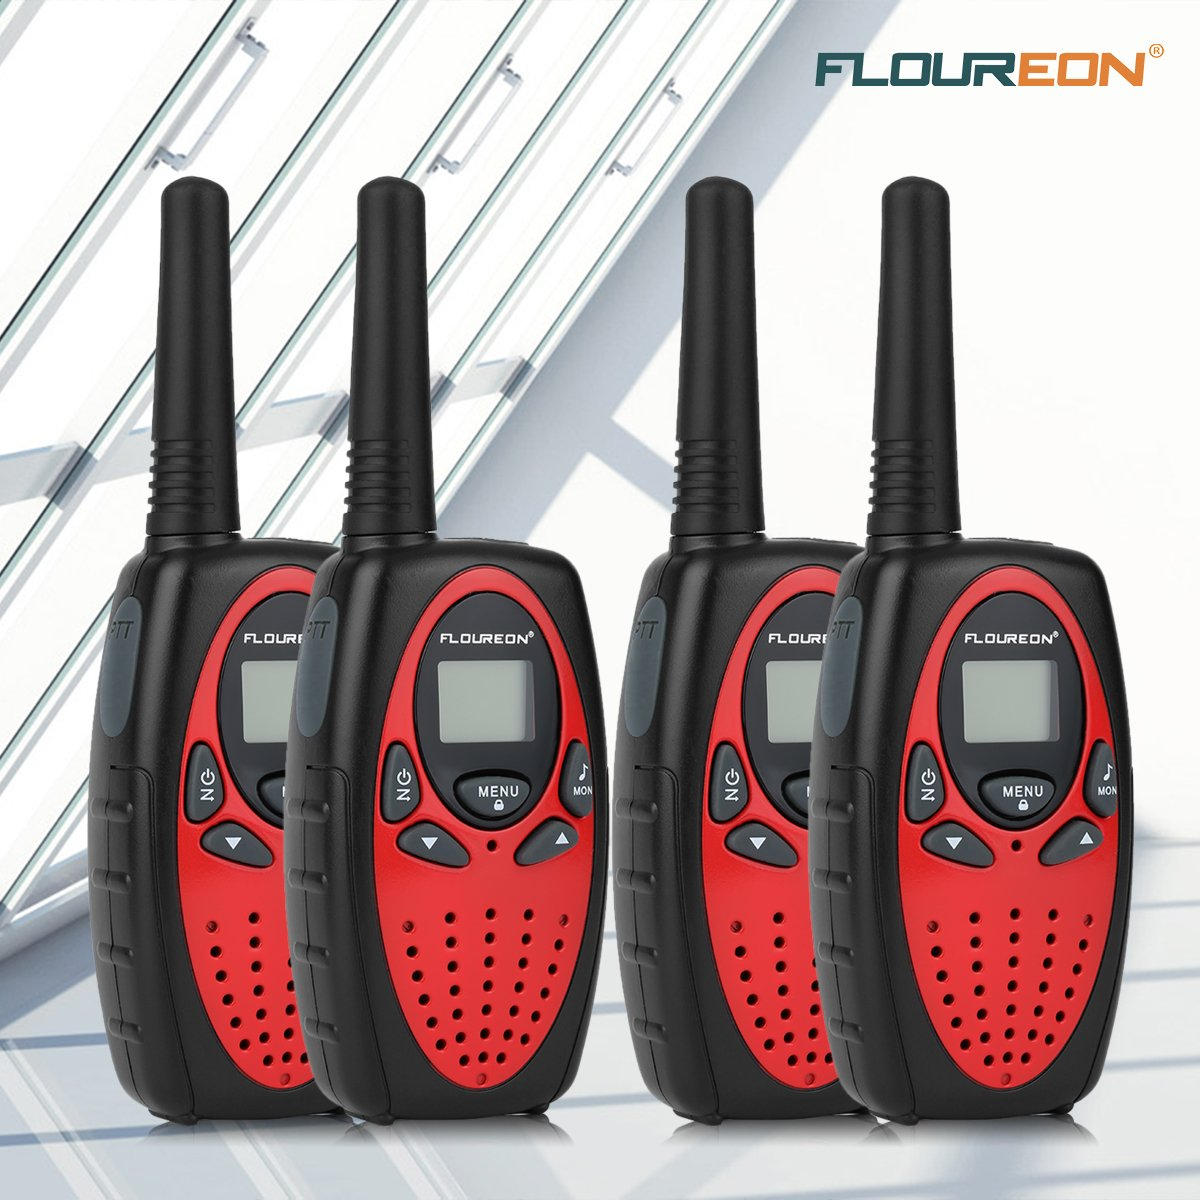 Floureon 4 Packs 22-Channel FRS/GMRS Two Way Radios Up to 3000M/1.9MI Range (MAX 5000M/3.1MI) Handheld Walkie Talkies for Outdoor Adventure (Red) by floureon (Image #8)